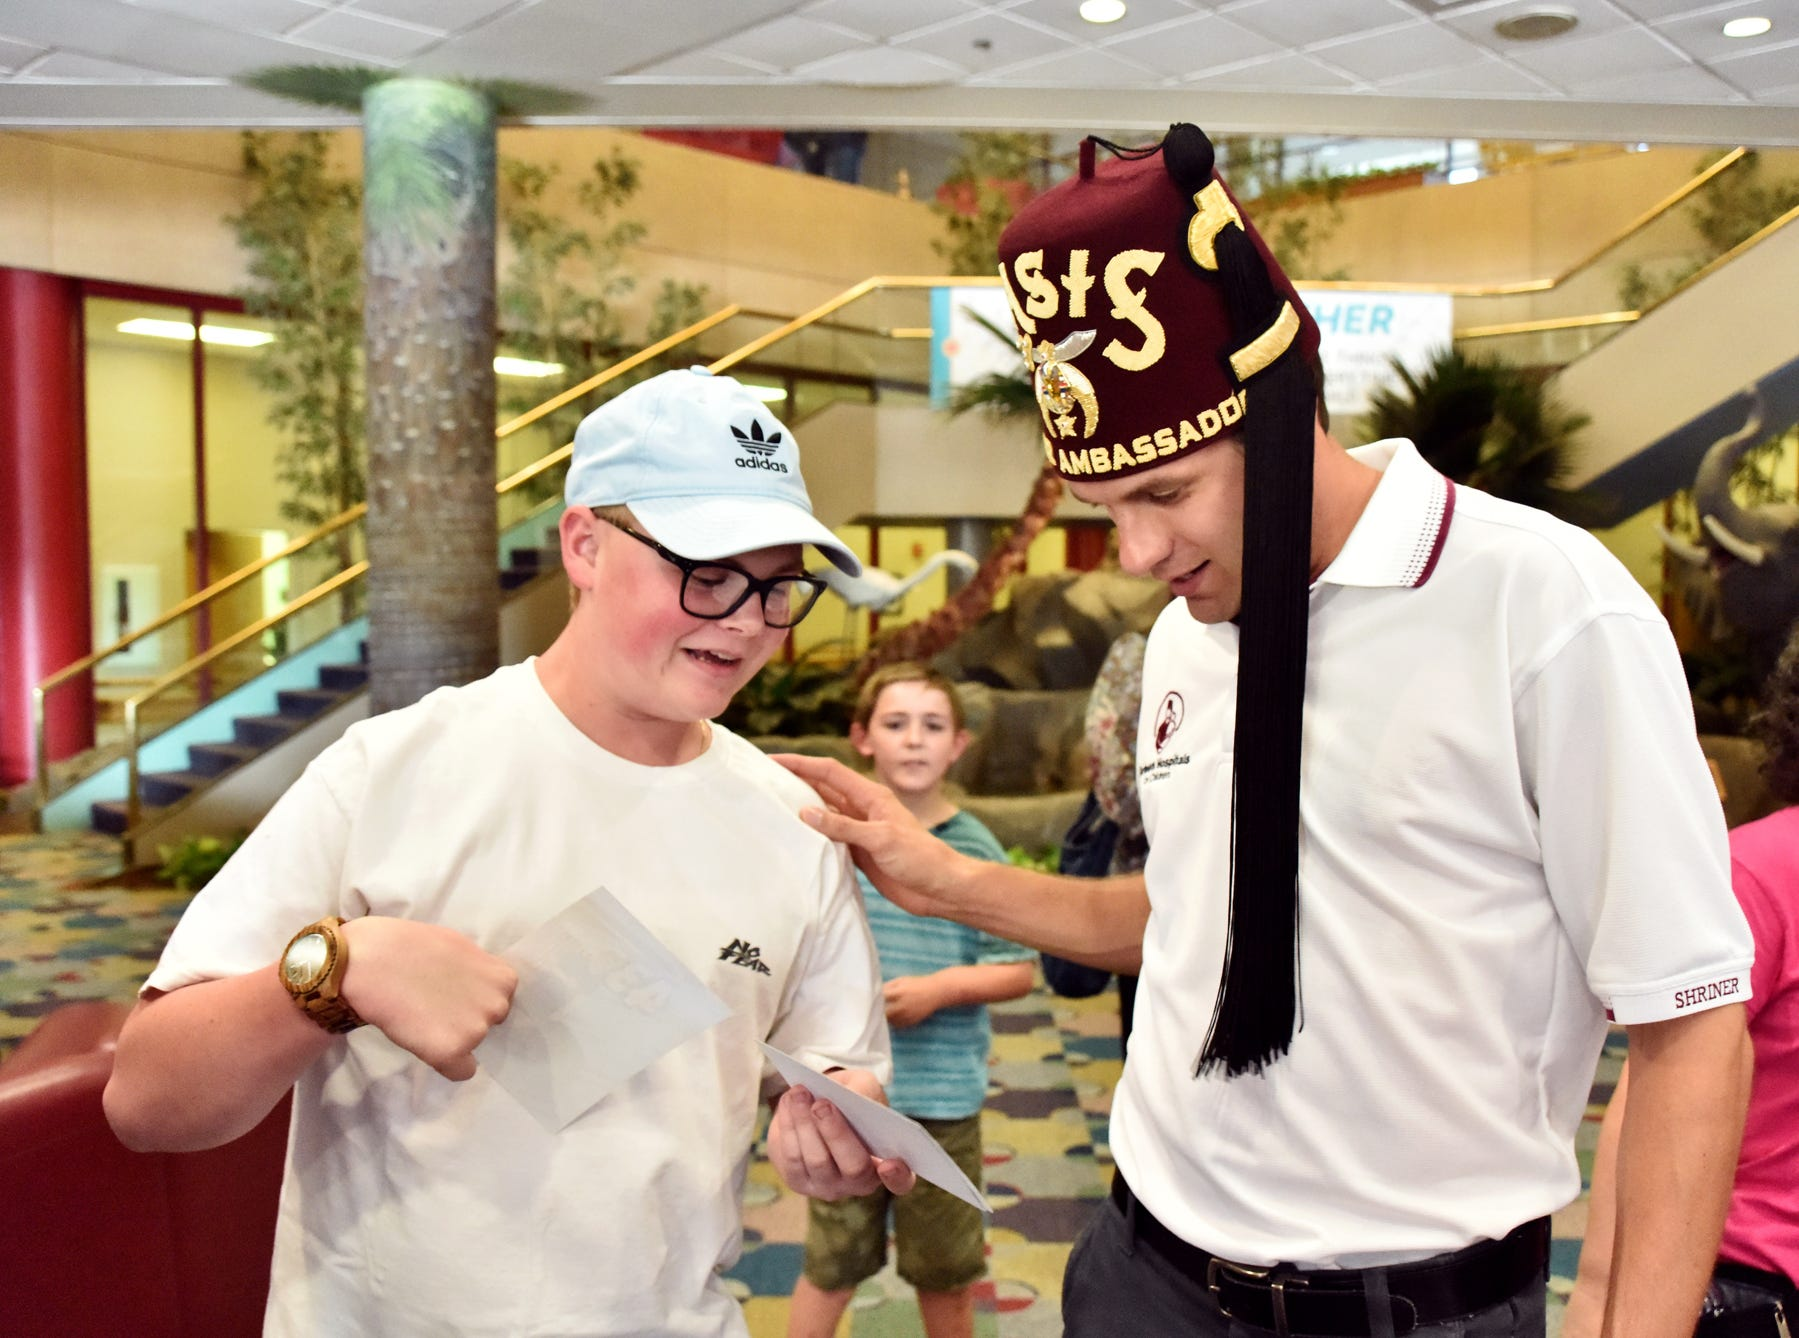 Chase Plesko, 15, left, talks with NASCAR driver David Ragan at the Shriners Hospital for Children in Greenville on August 15, 2018.